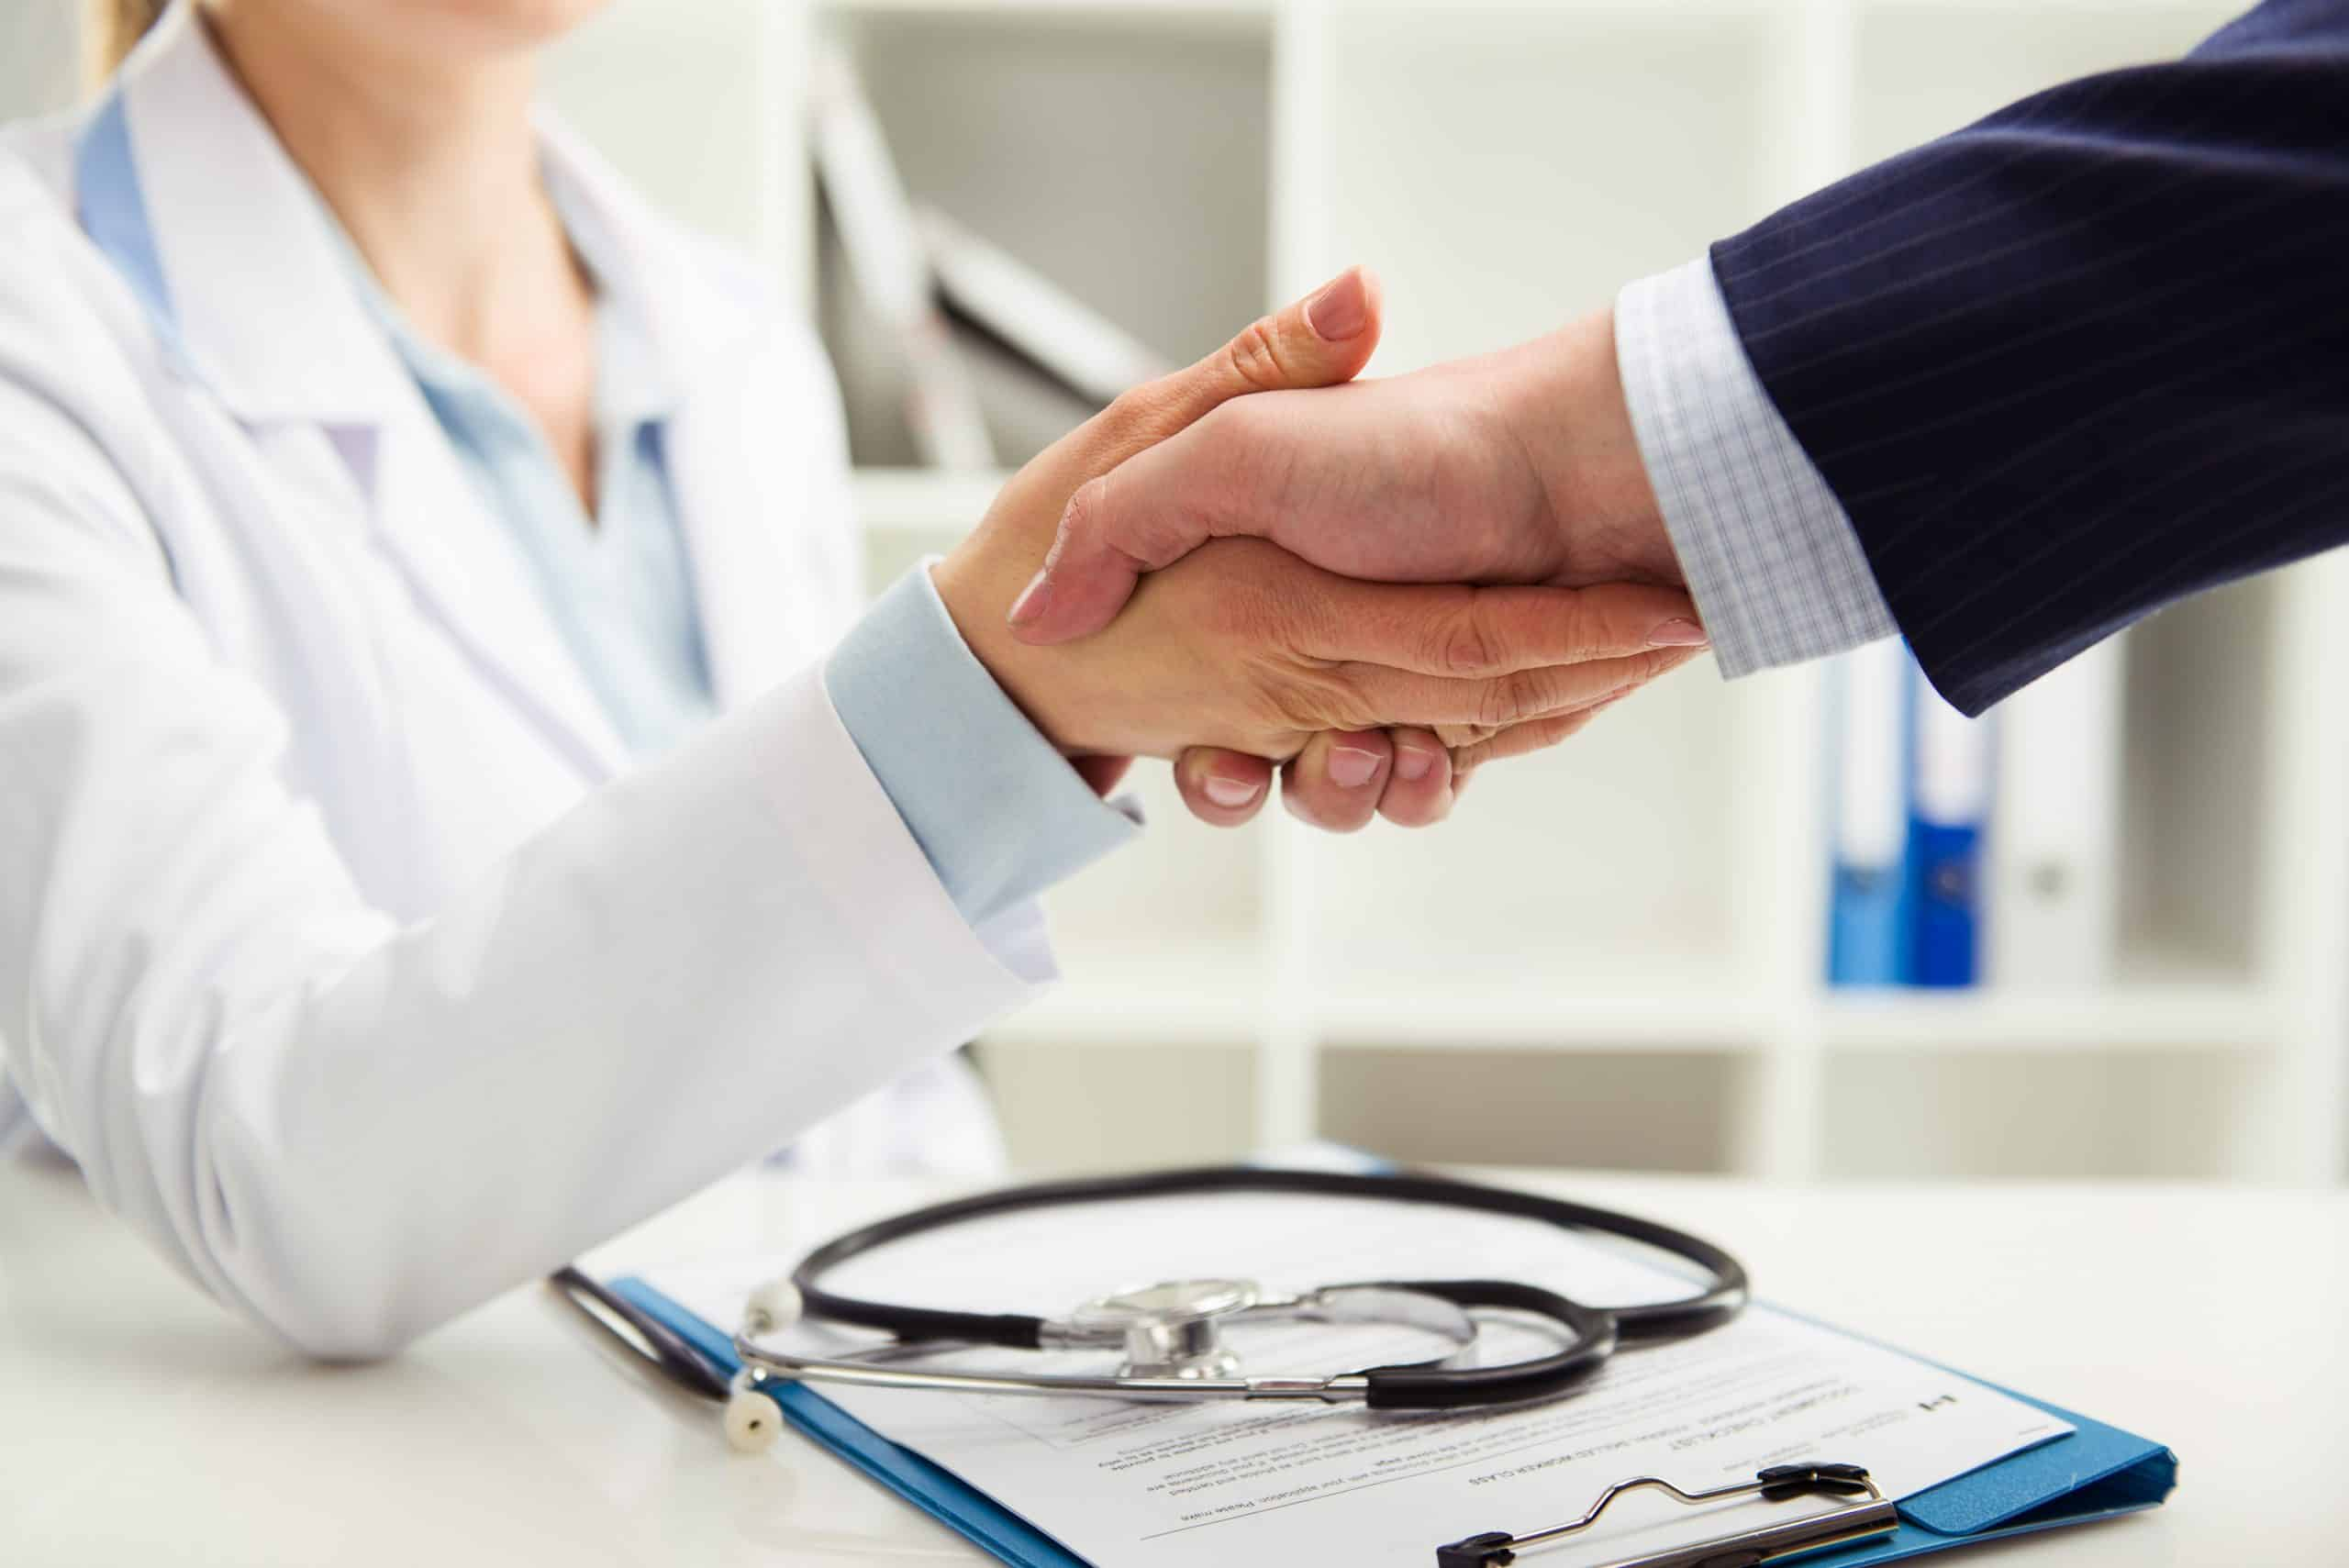 Seeking Primary Care and Behavioral Health Clinicians